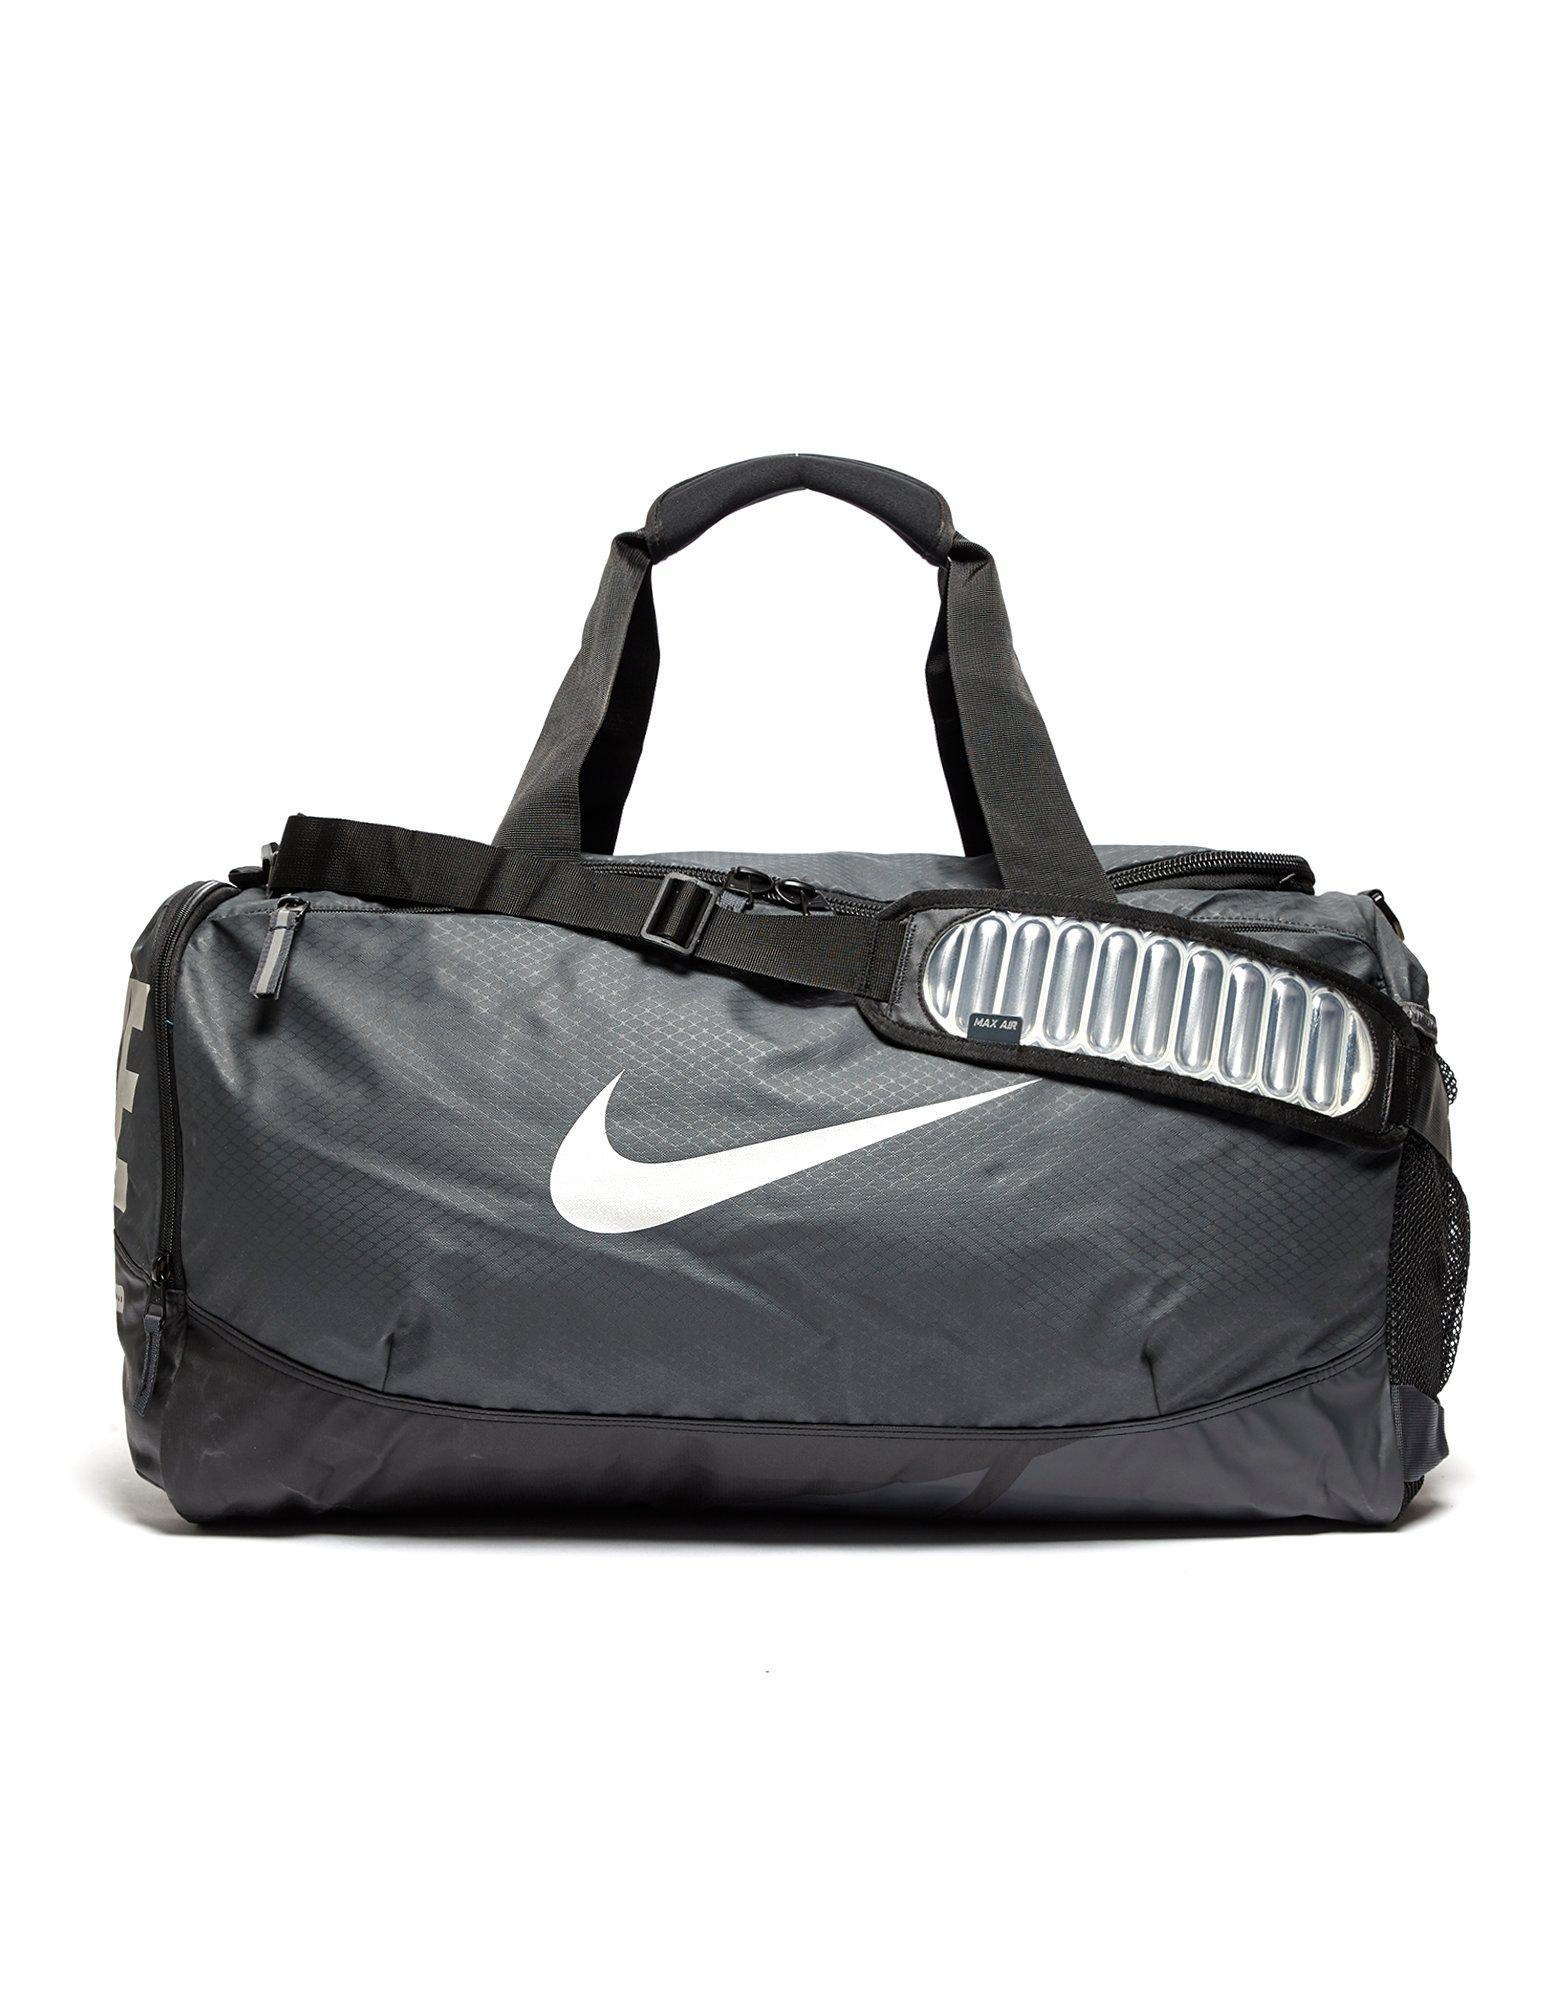 07dd746676 Lyst - Nike Vapor Max Air Duffle Bag in Gray for Men